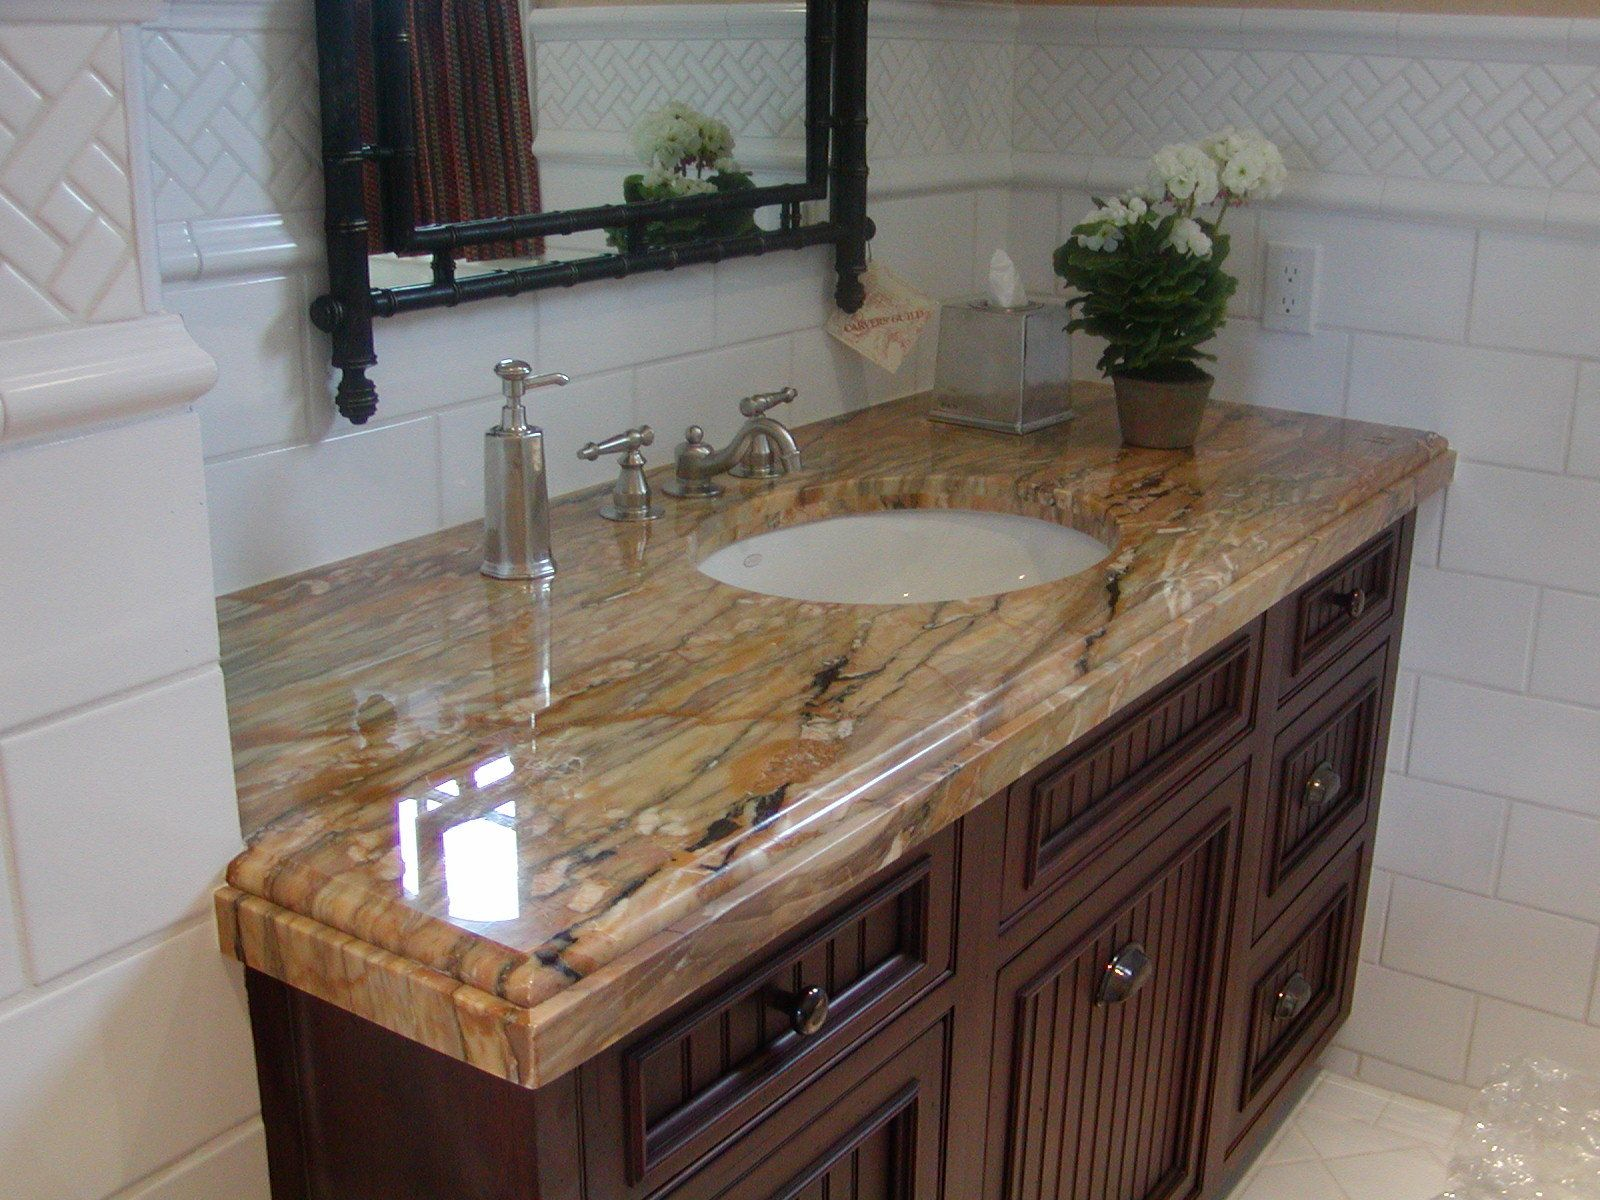 Bathroom Cabinets Orlando brown / tan /white granite vanity with oval undermount sink and